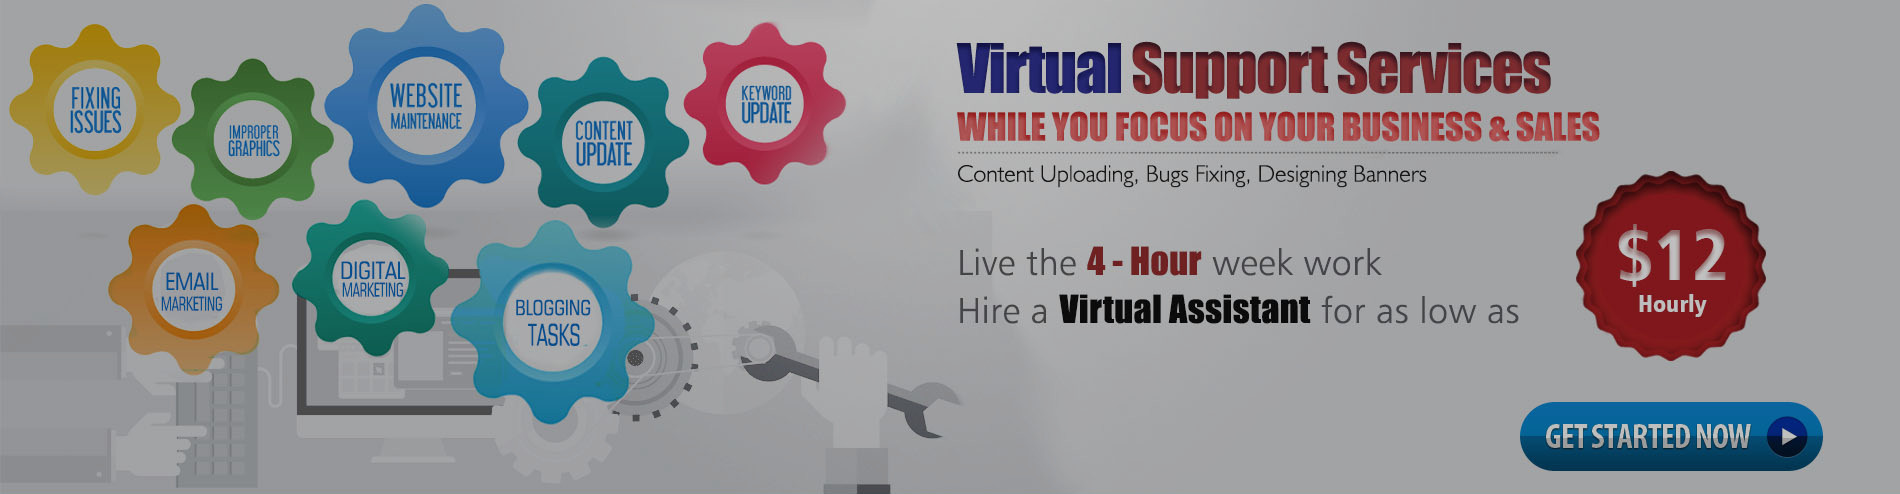 Virtual-Support